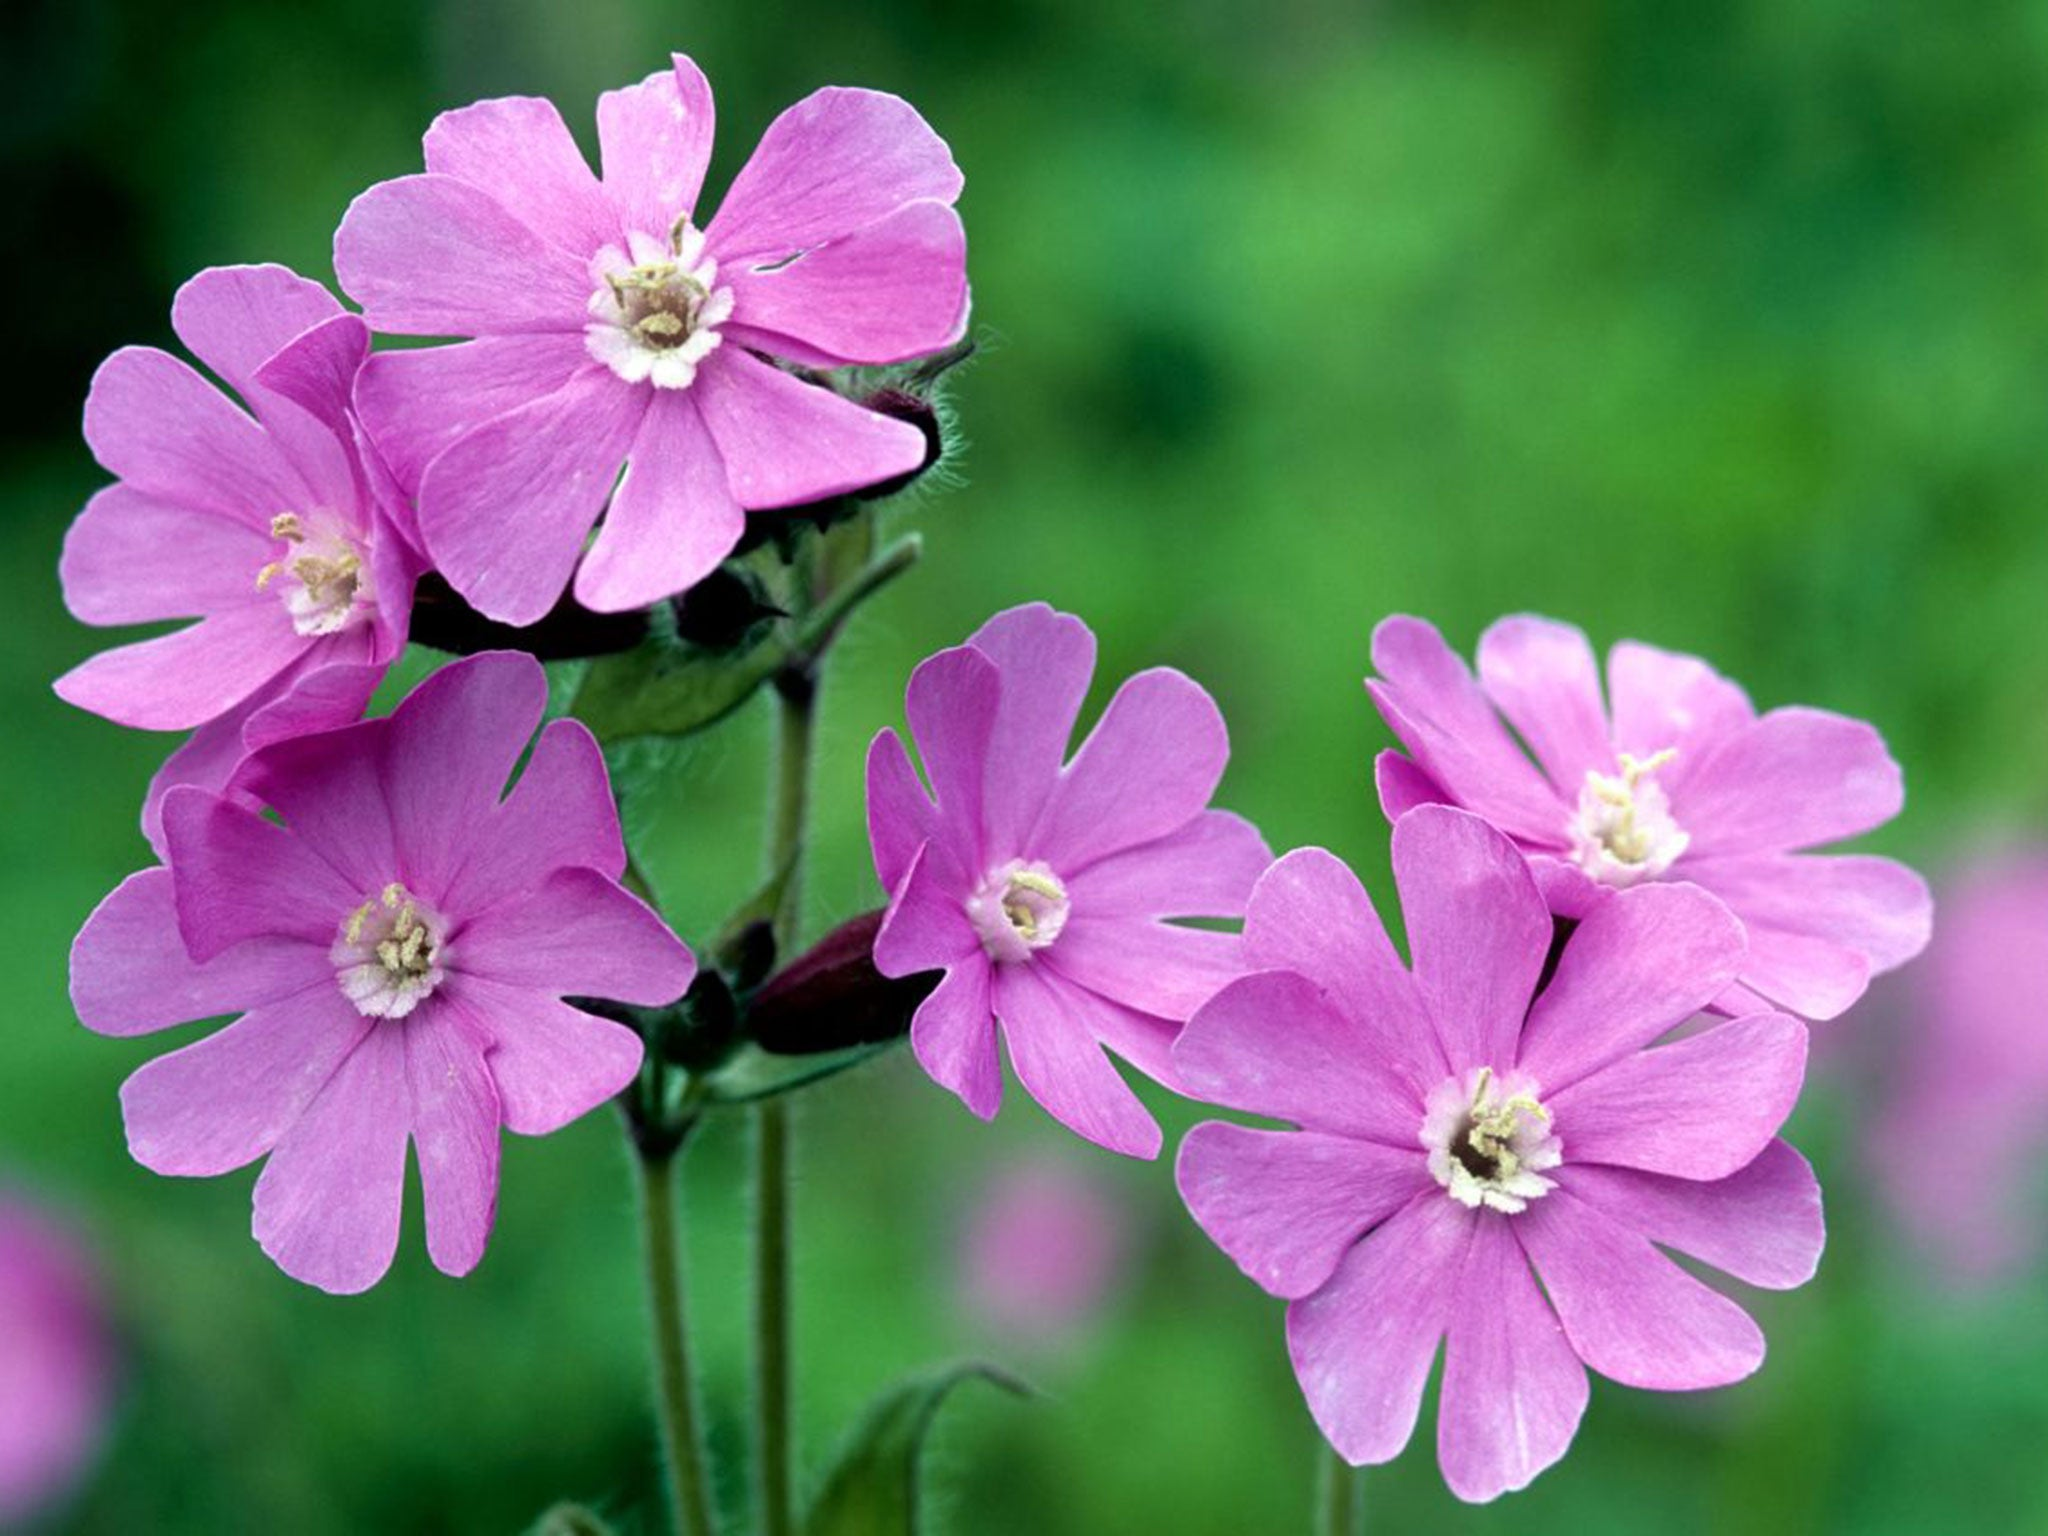 More than 600 species of british flowers in bloom on new years day red izmirmasajfo